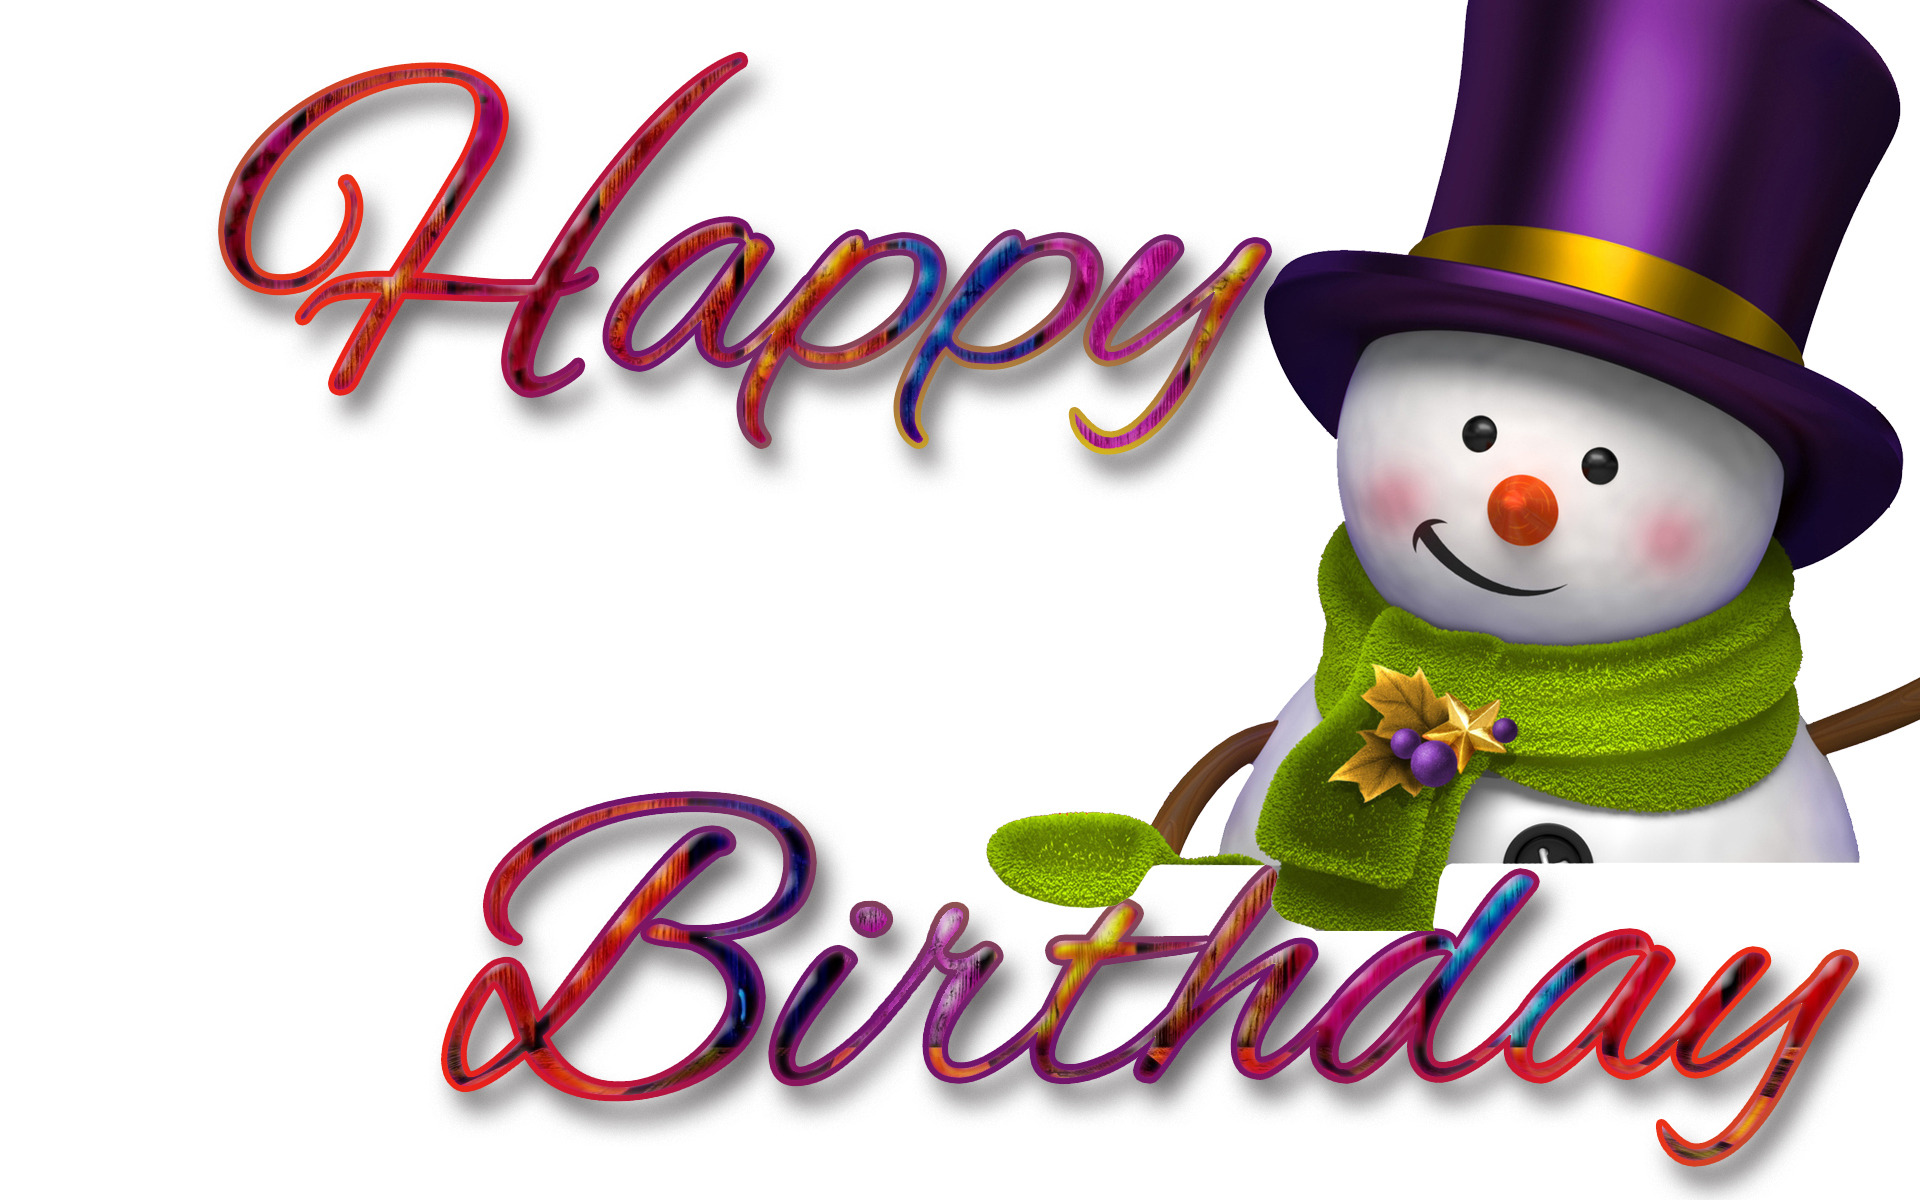 happy birthday day wallpaper ; happy-birthday-by-name-image-happy-birthday-cake-with-name-edit-for-facebook-happy-birthday-holiday-hd-wallpaper-1920x1200-1152